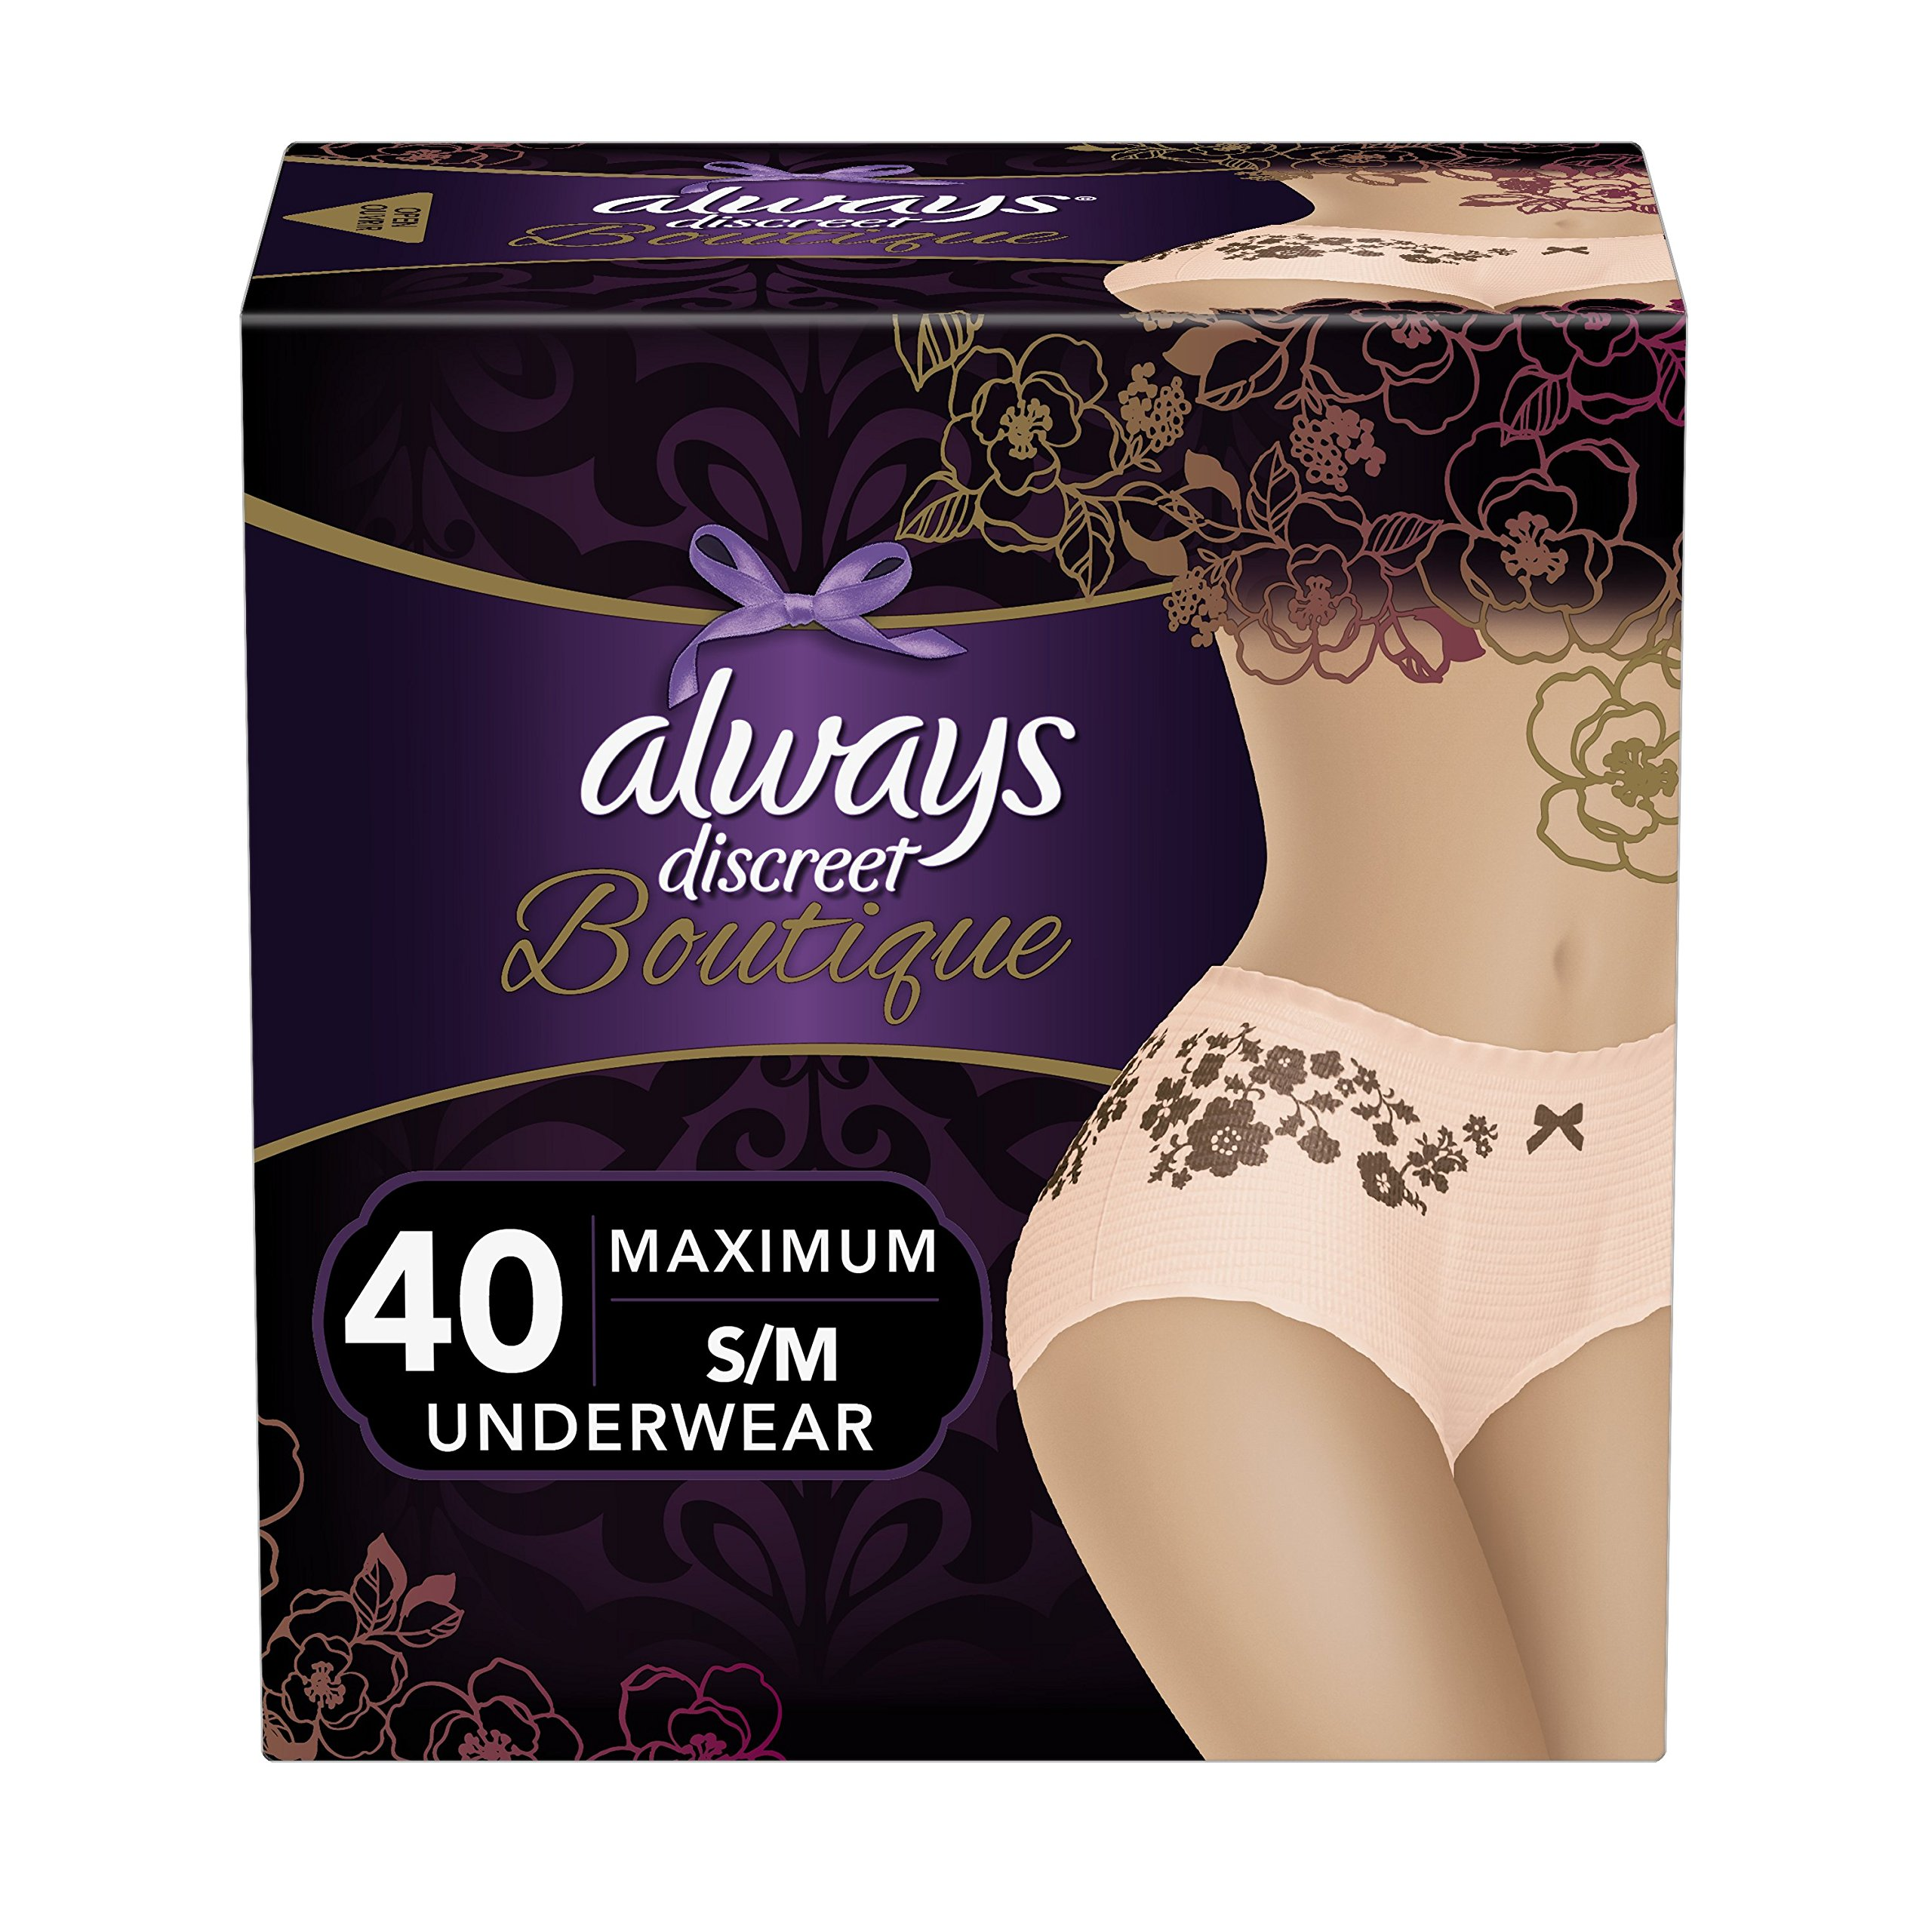 Always Discreet Boutique Incontinence Maximum Protection Underwear for Women, Small/Medium, 40 Count